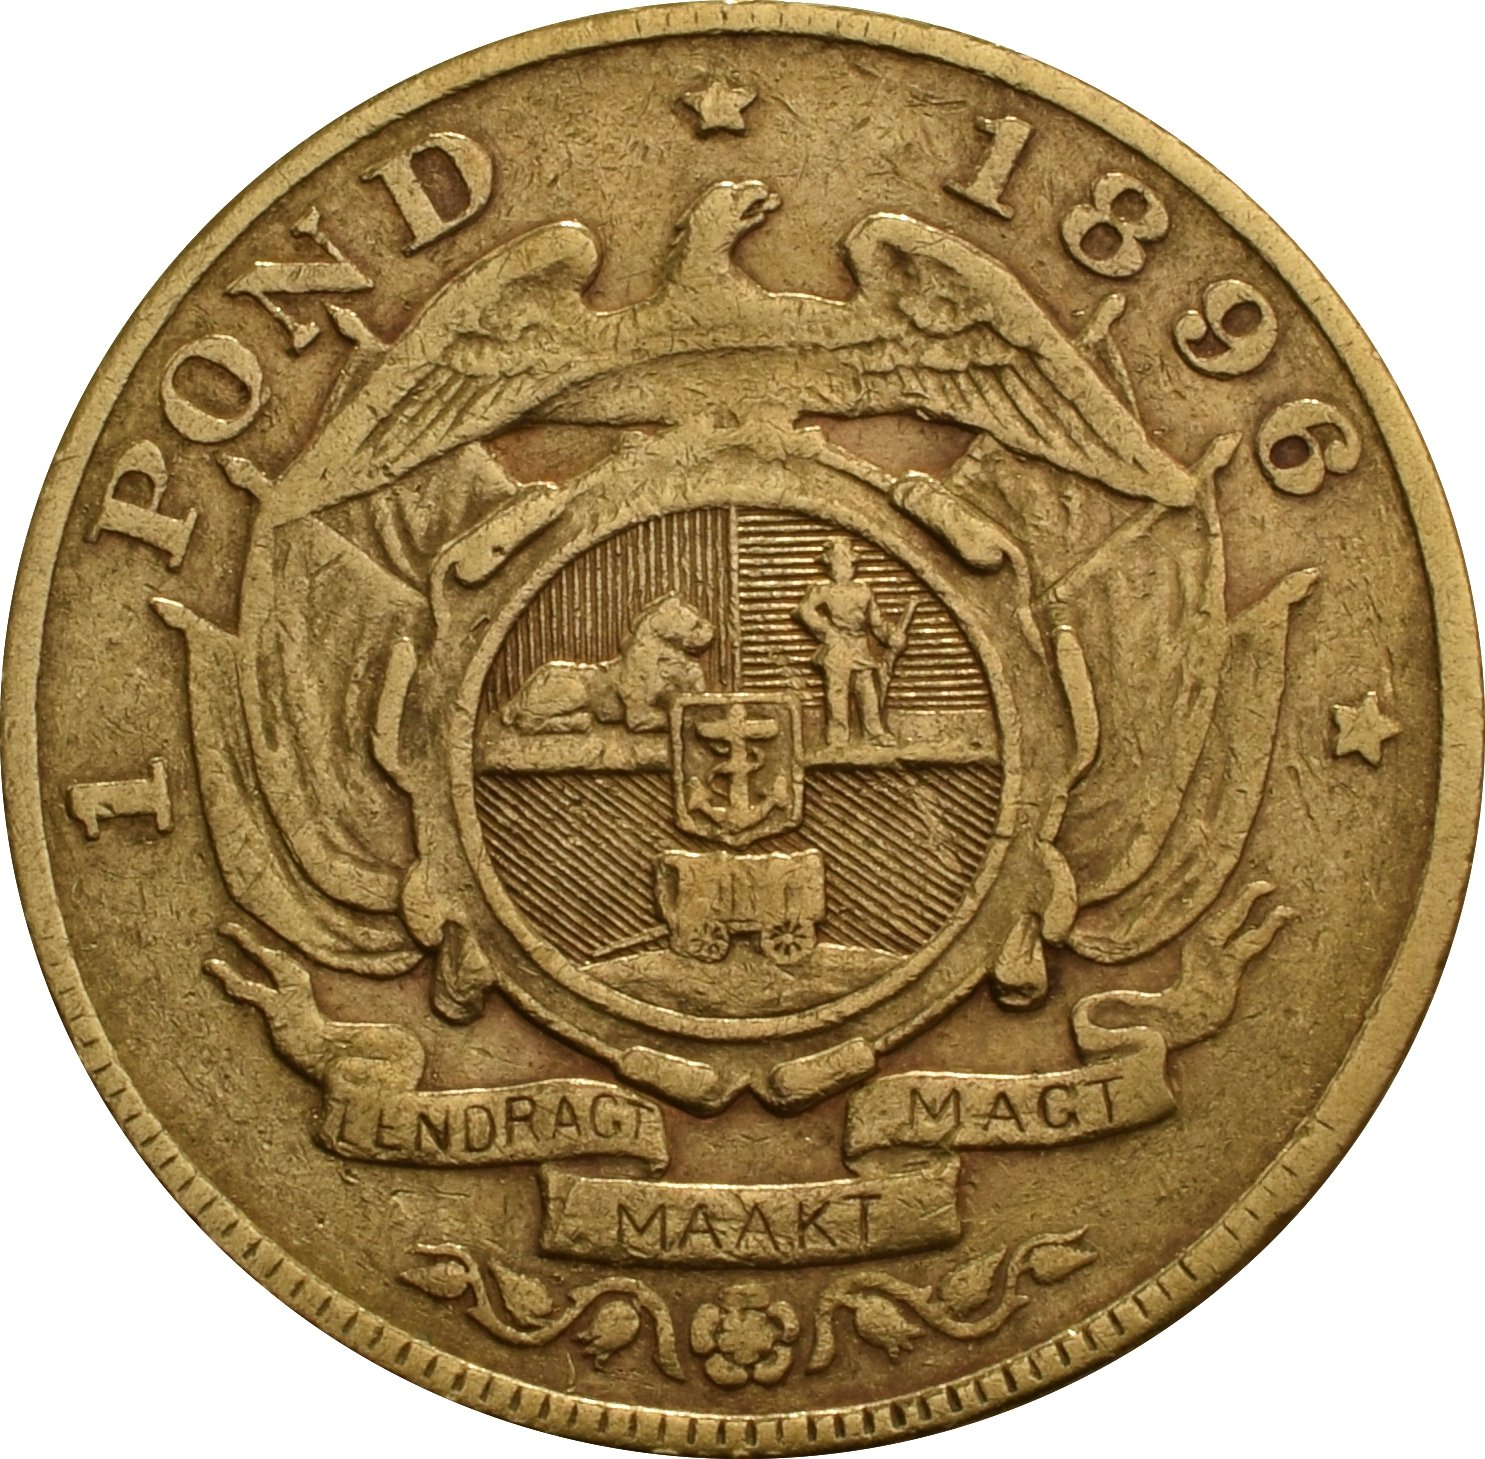 1896 1 Pond South Africa 163 413